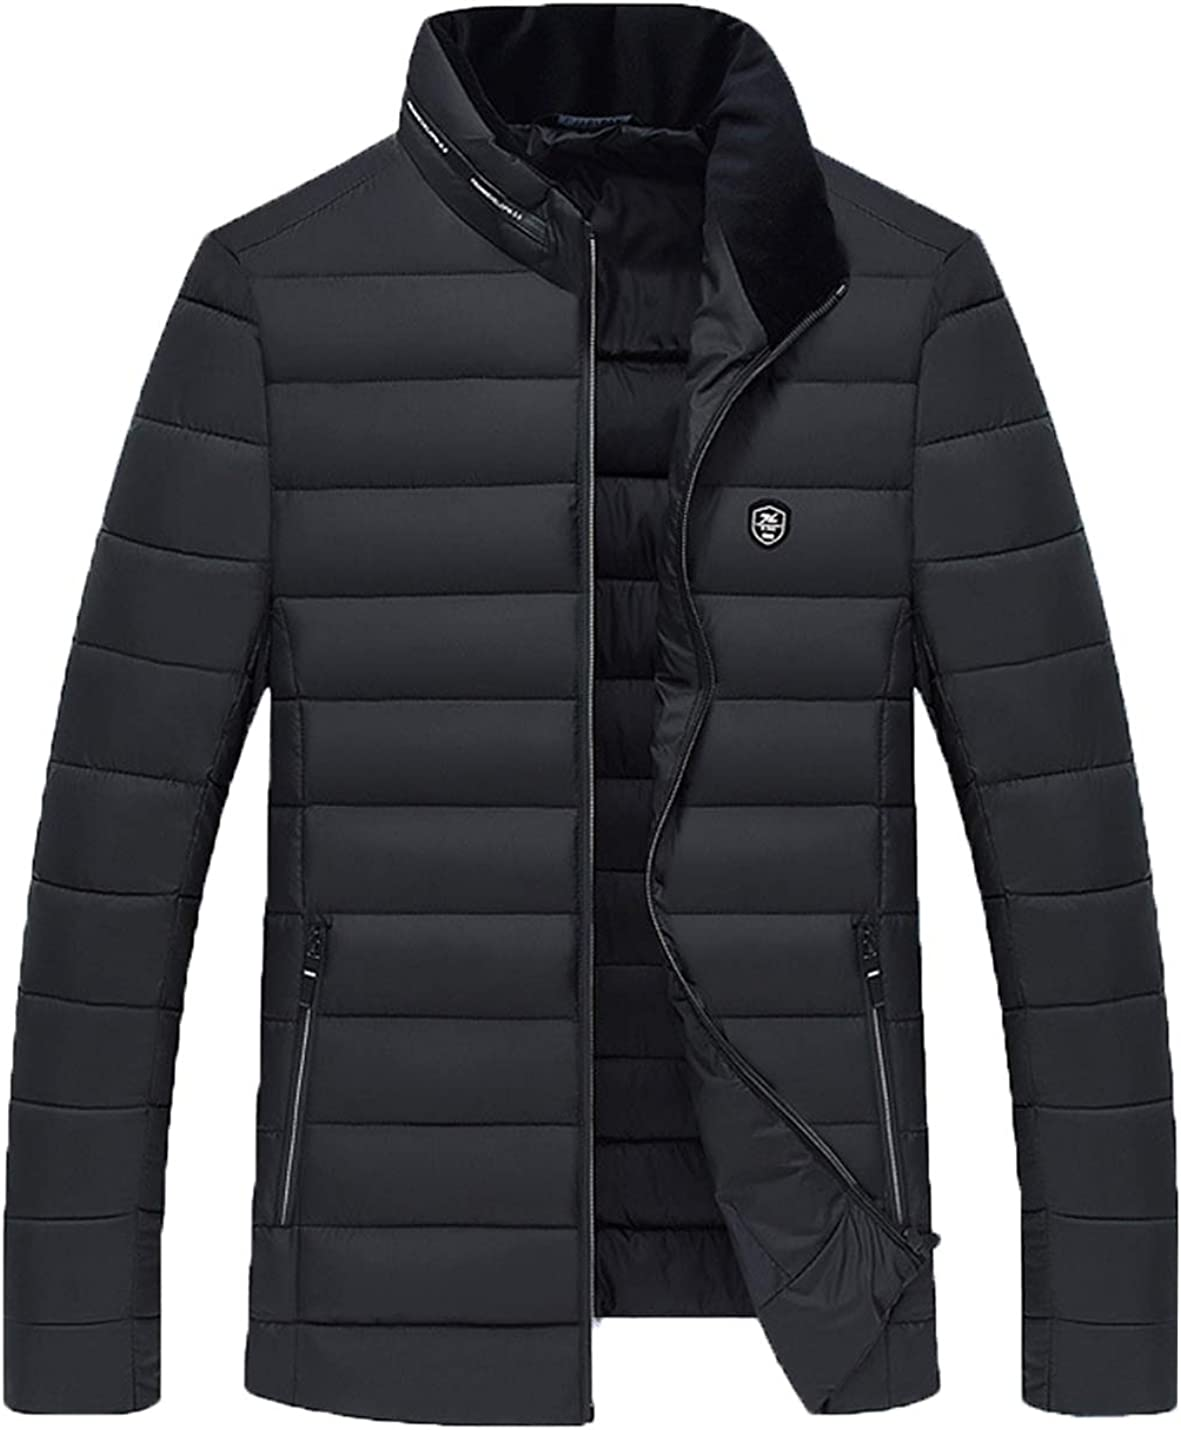 Lentta Men's Winter Warm Solid Full Zip Cotton Padded Quilted Puffy Jacket Coat